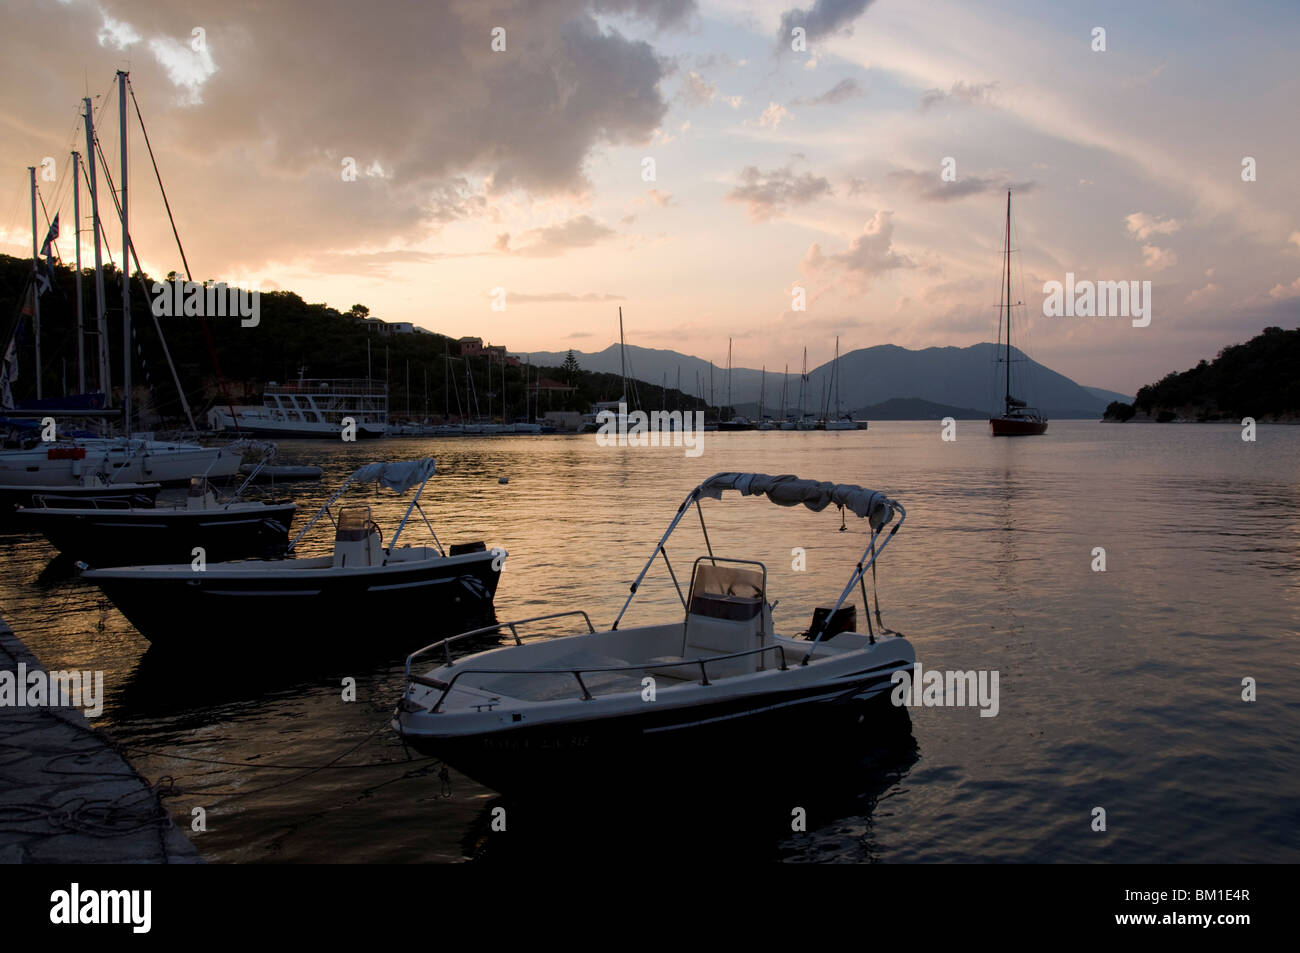 Boats in harbour, Vathi, Meganisi, Ionian Islands, Greek Islands, Greece, Europe - Stock Image